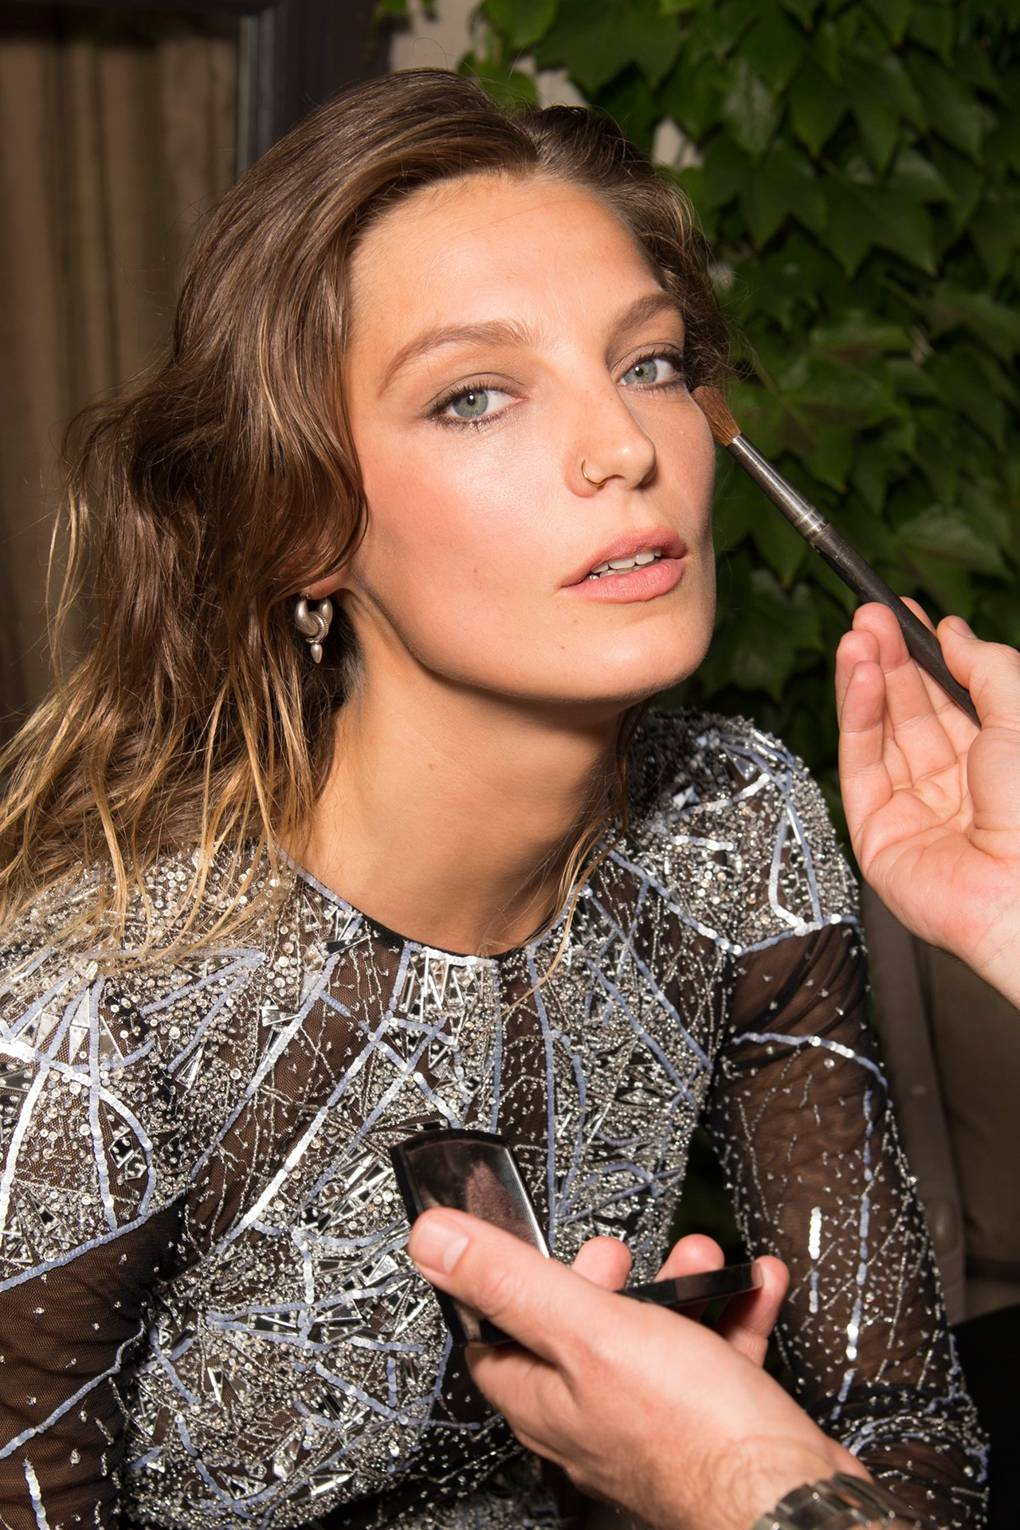 ec585d78910 Daria Werbowy Interview: Beauty, Hair, Lancôme | British Vogue